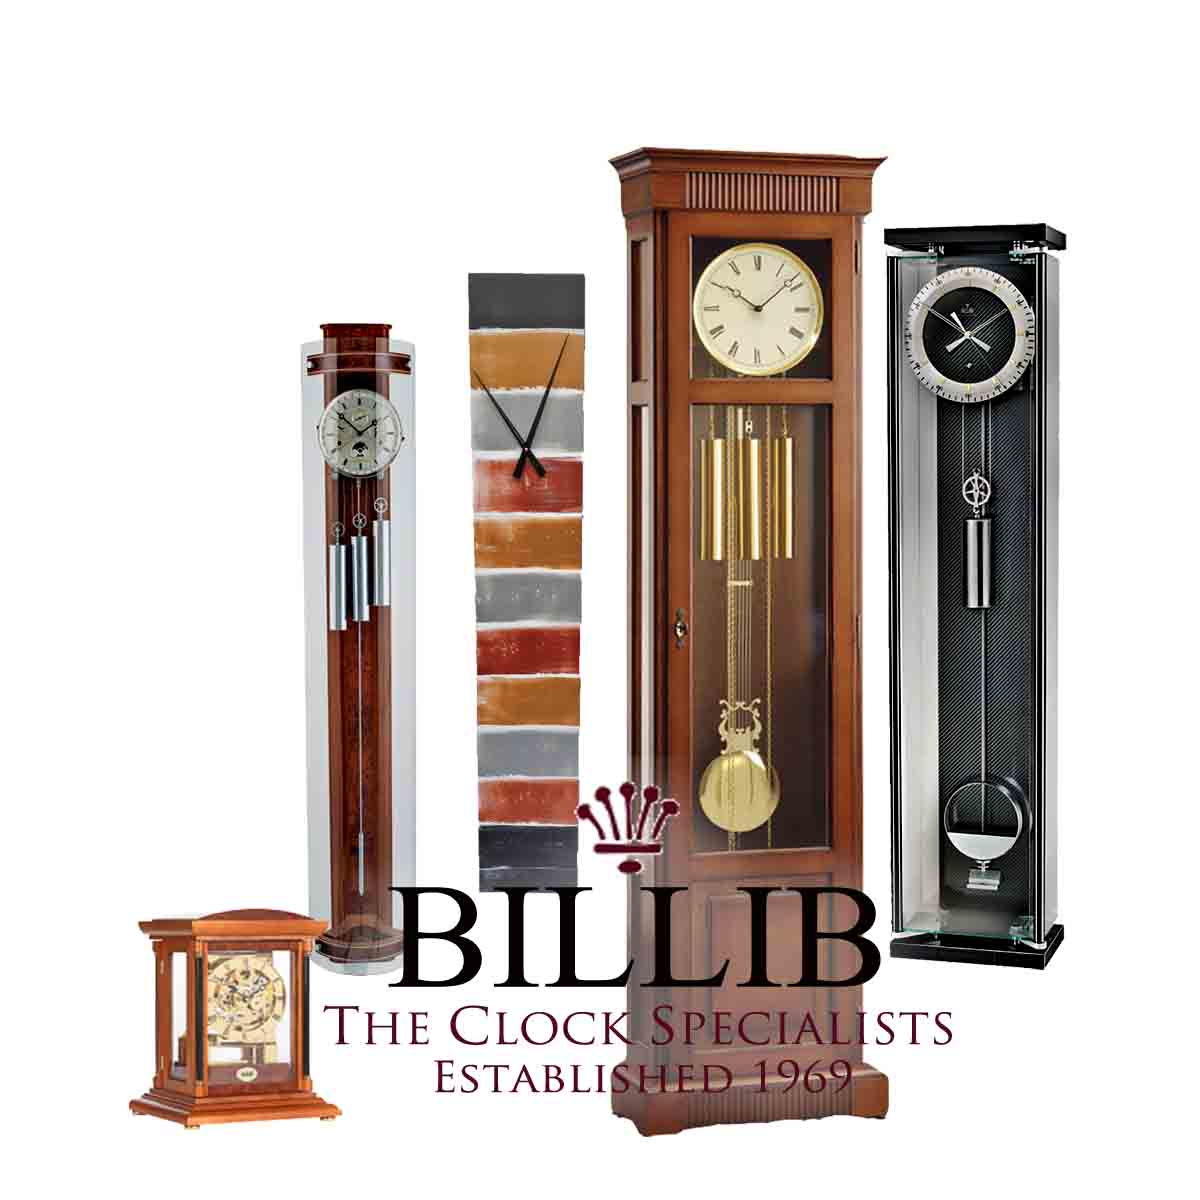 BilliB Clocks